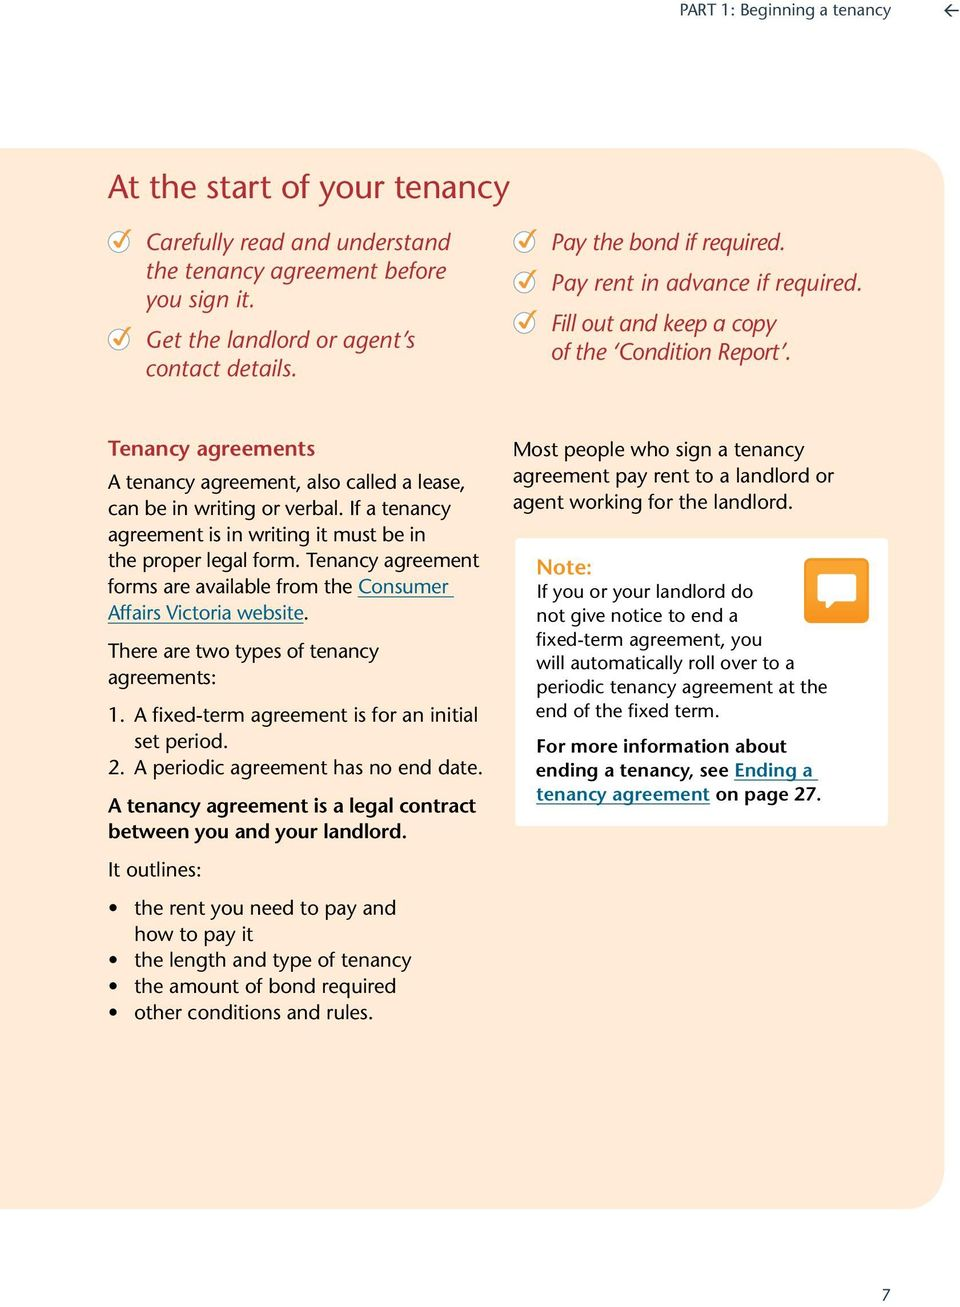 If a tenancy agreement is in writing it must be in the proper legal form. Tenancy agreement forms are available from the Consumer Affairs Victoria website.